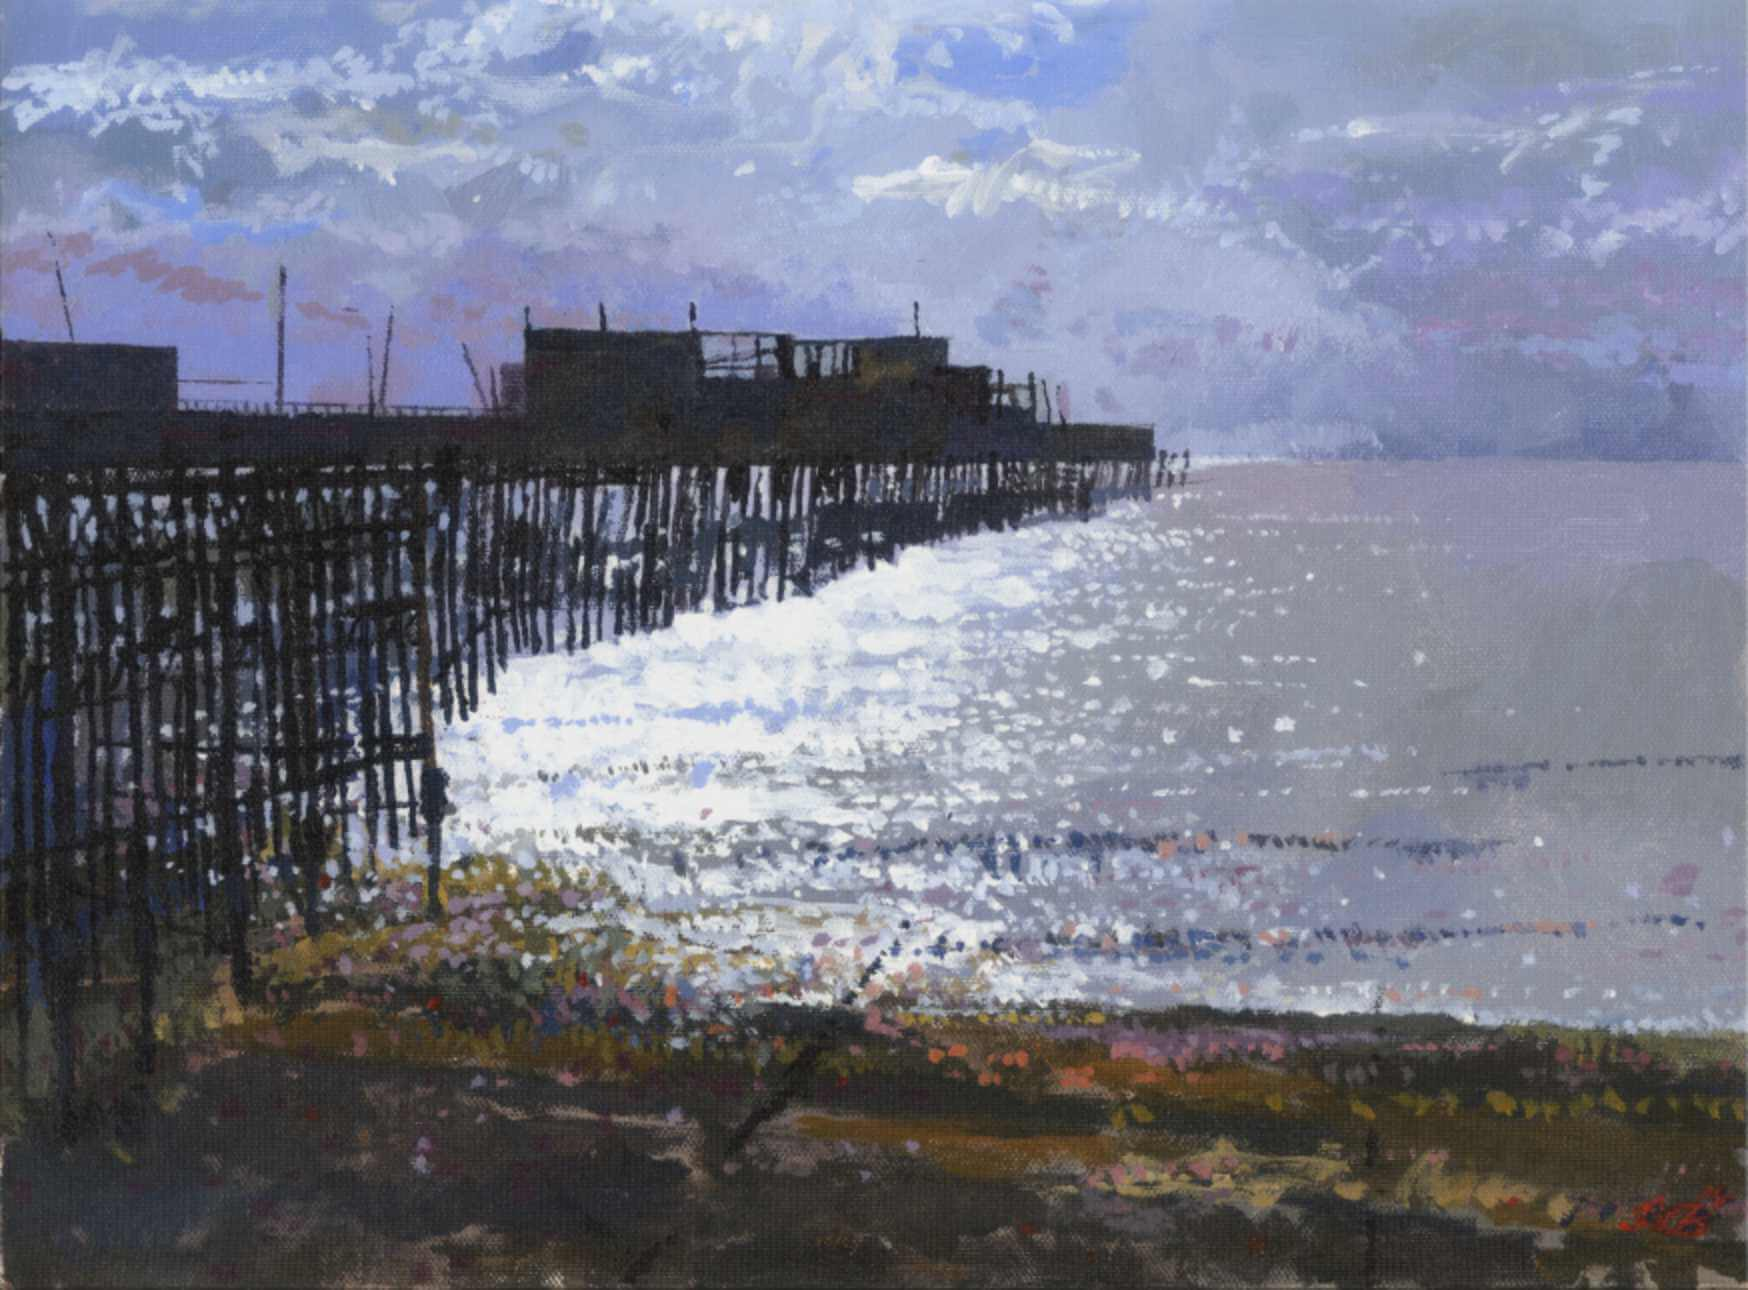 2014 Hastings Pier by Moonlight (study)